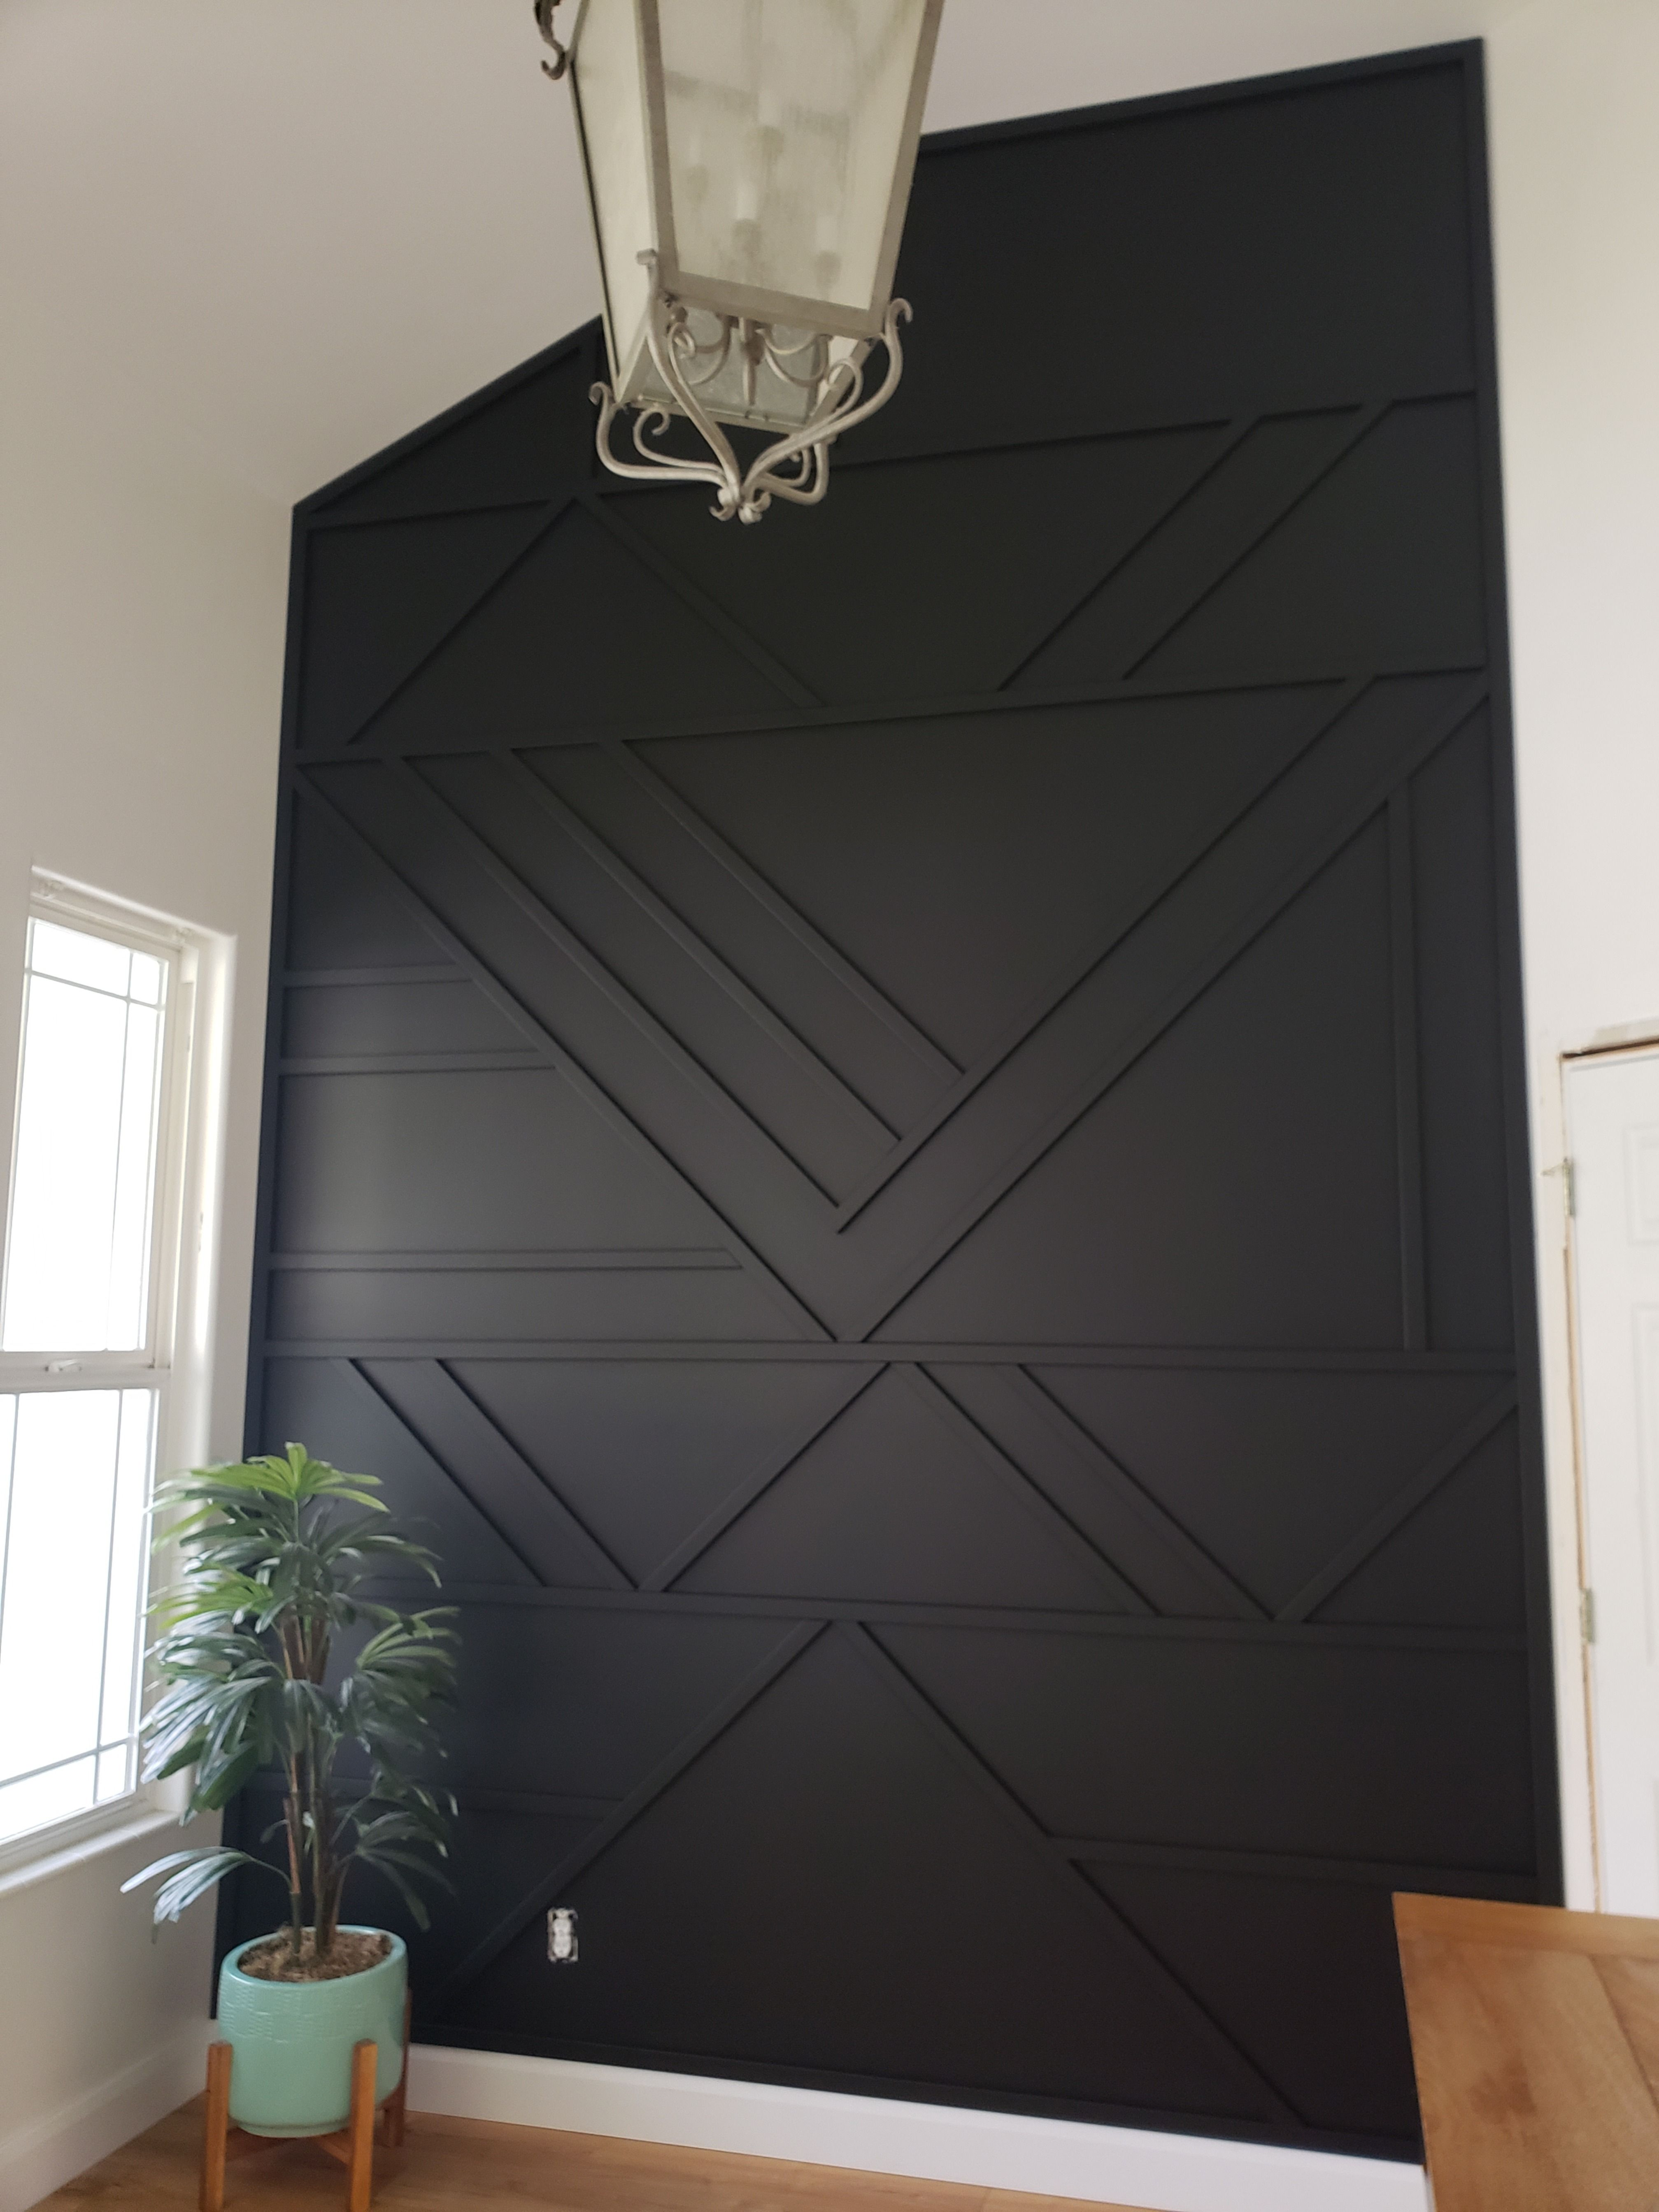 Just Finished Up This Smaller But Super Cool Accent Wall Black